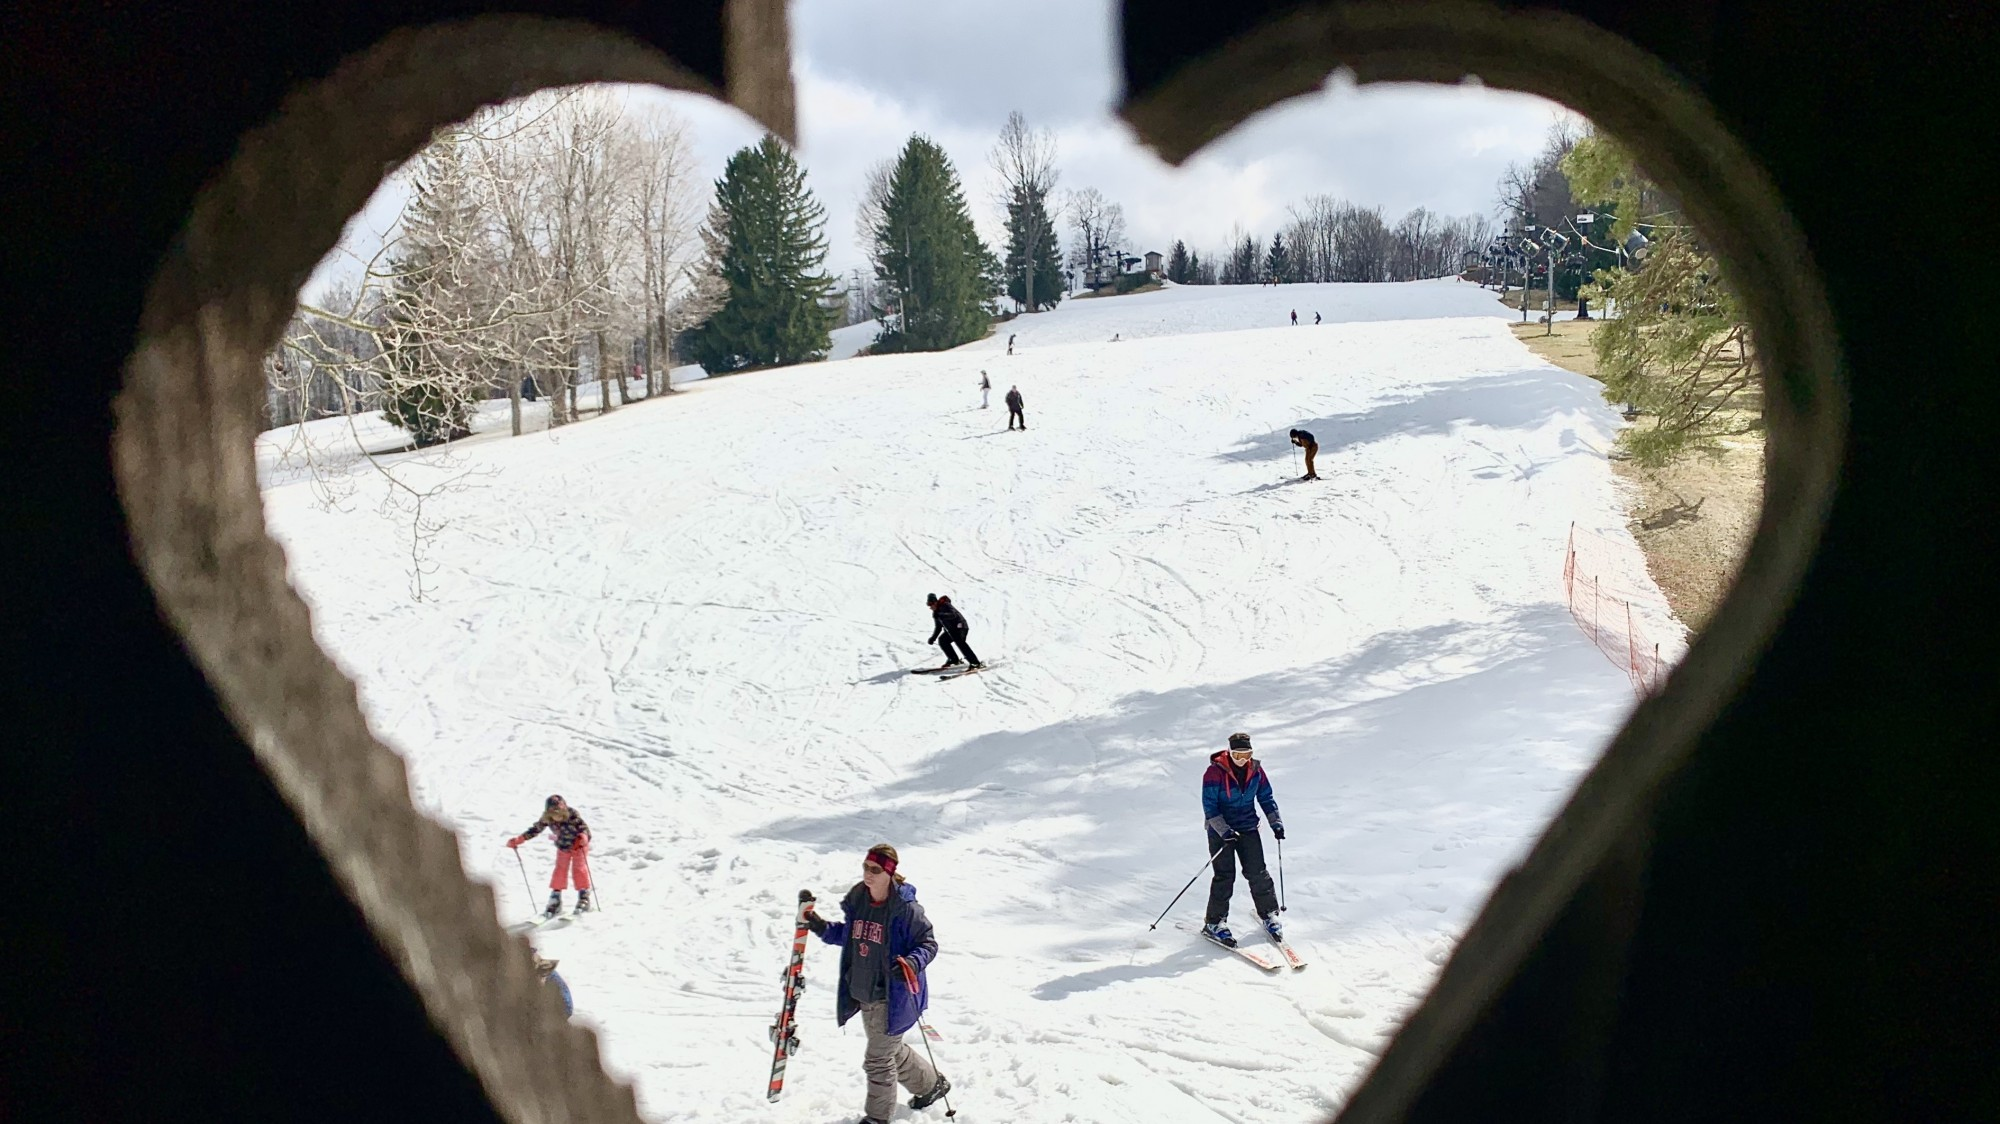 Looking through heart shaped railing at ski slope